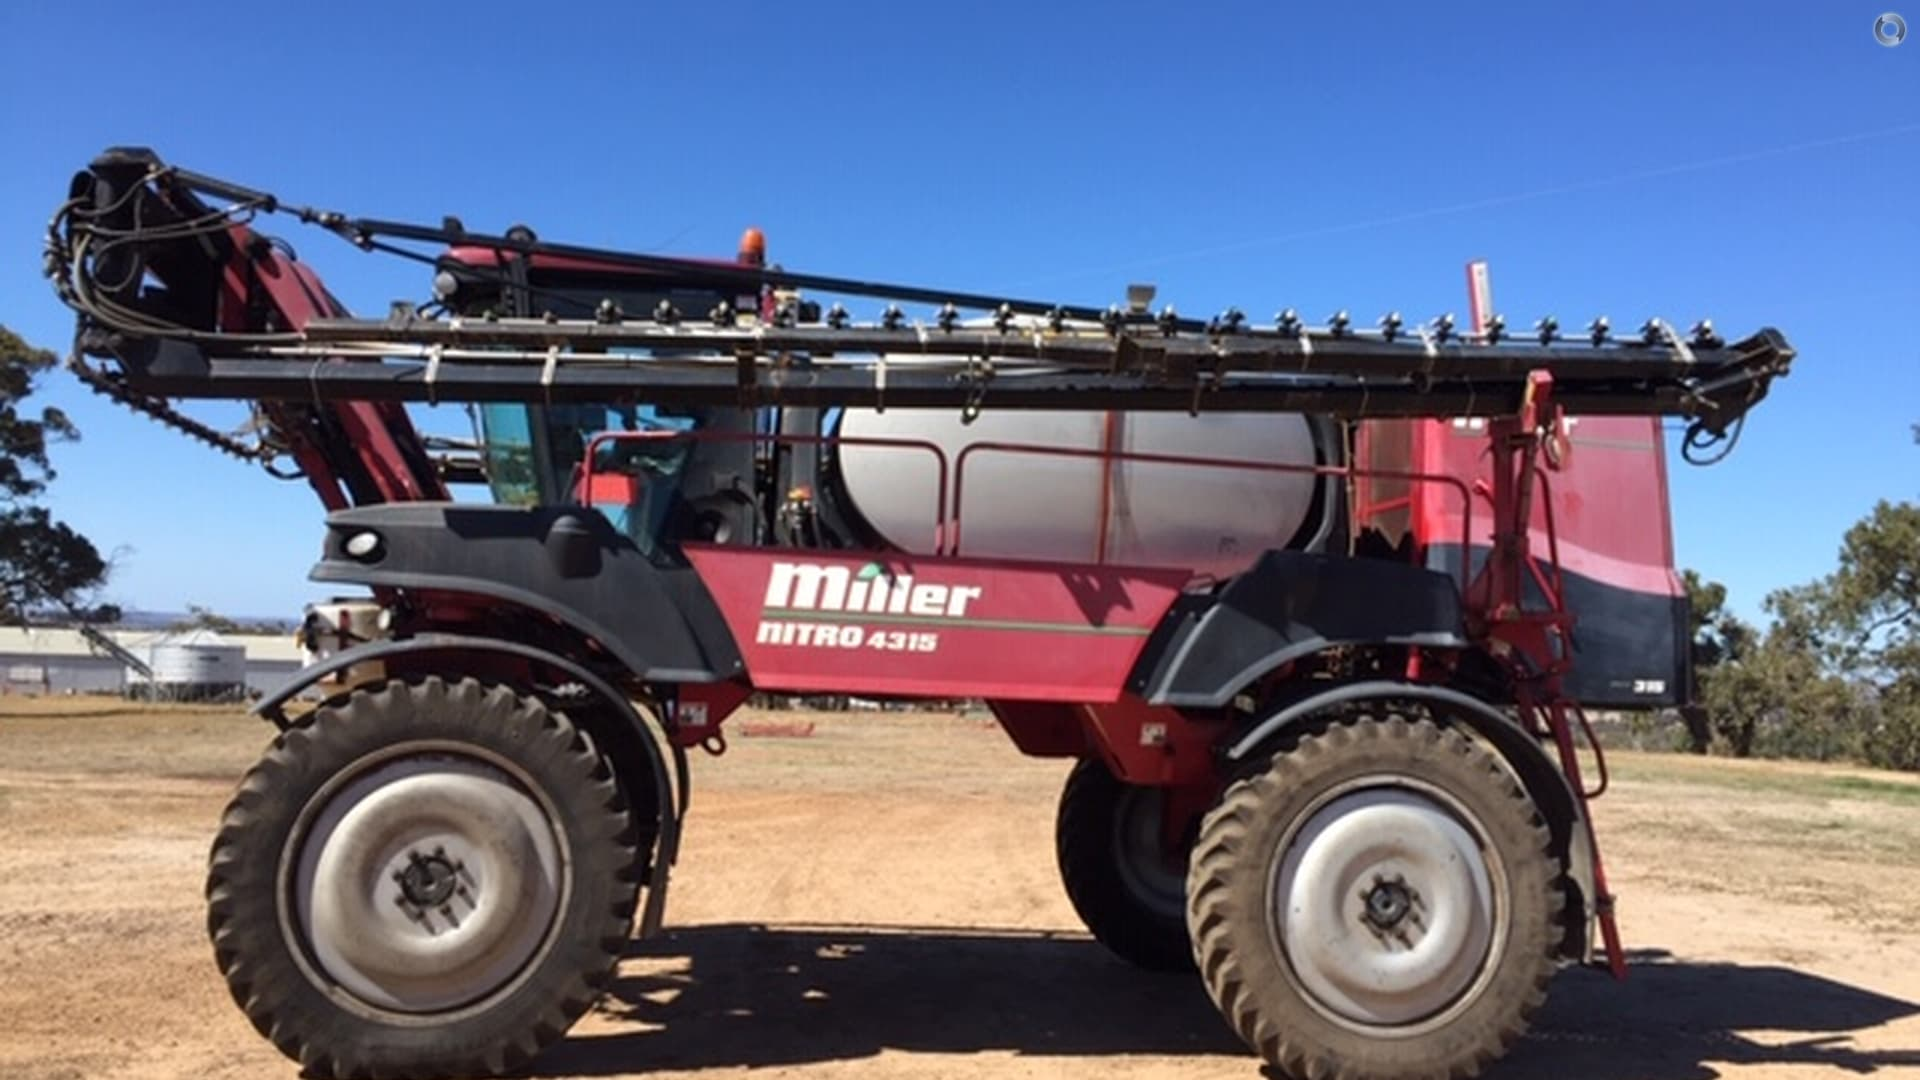 2008 Miller Nitro 4315 Sprayer